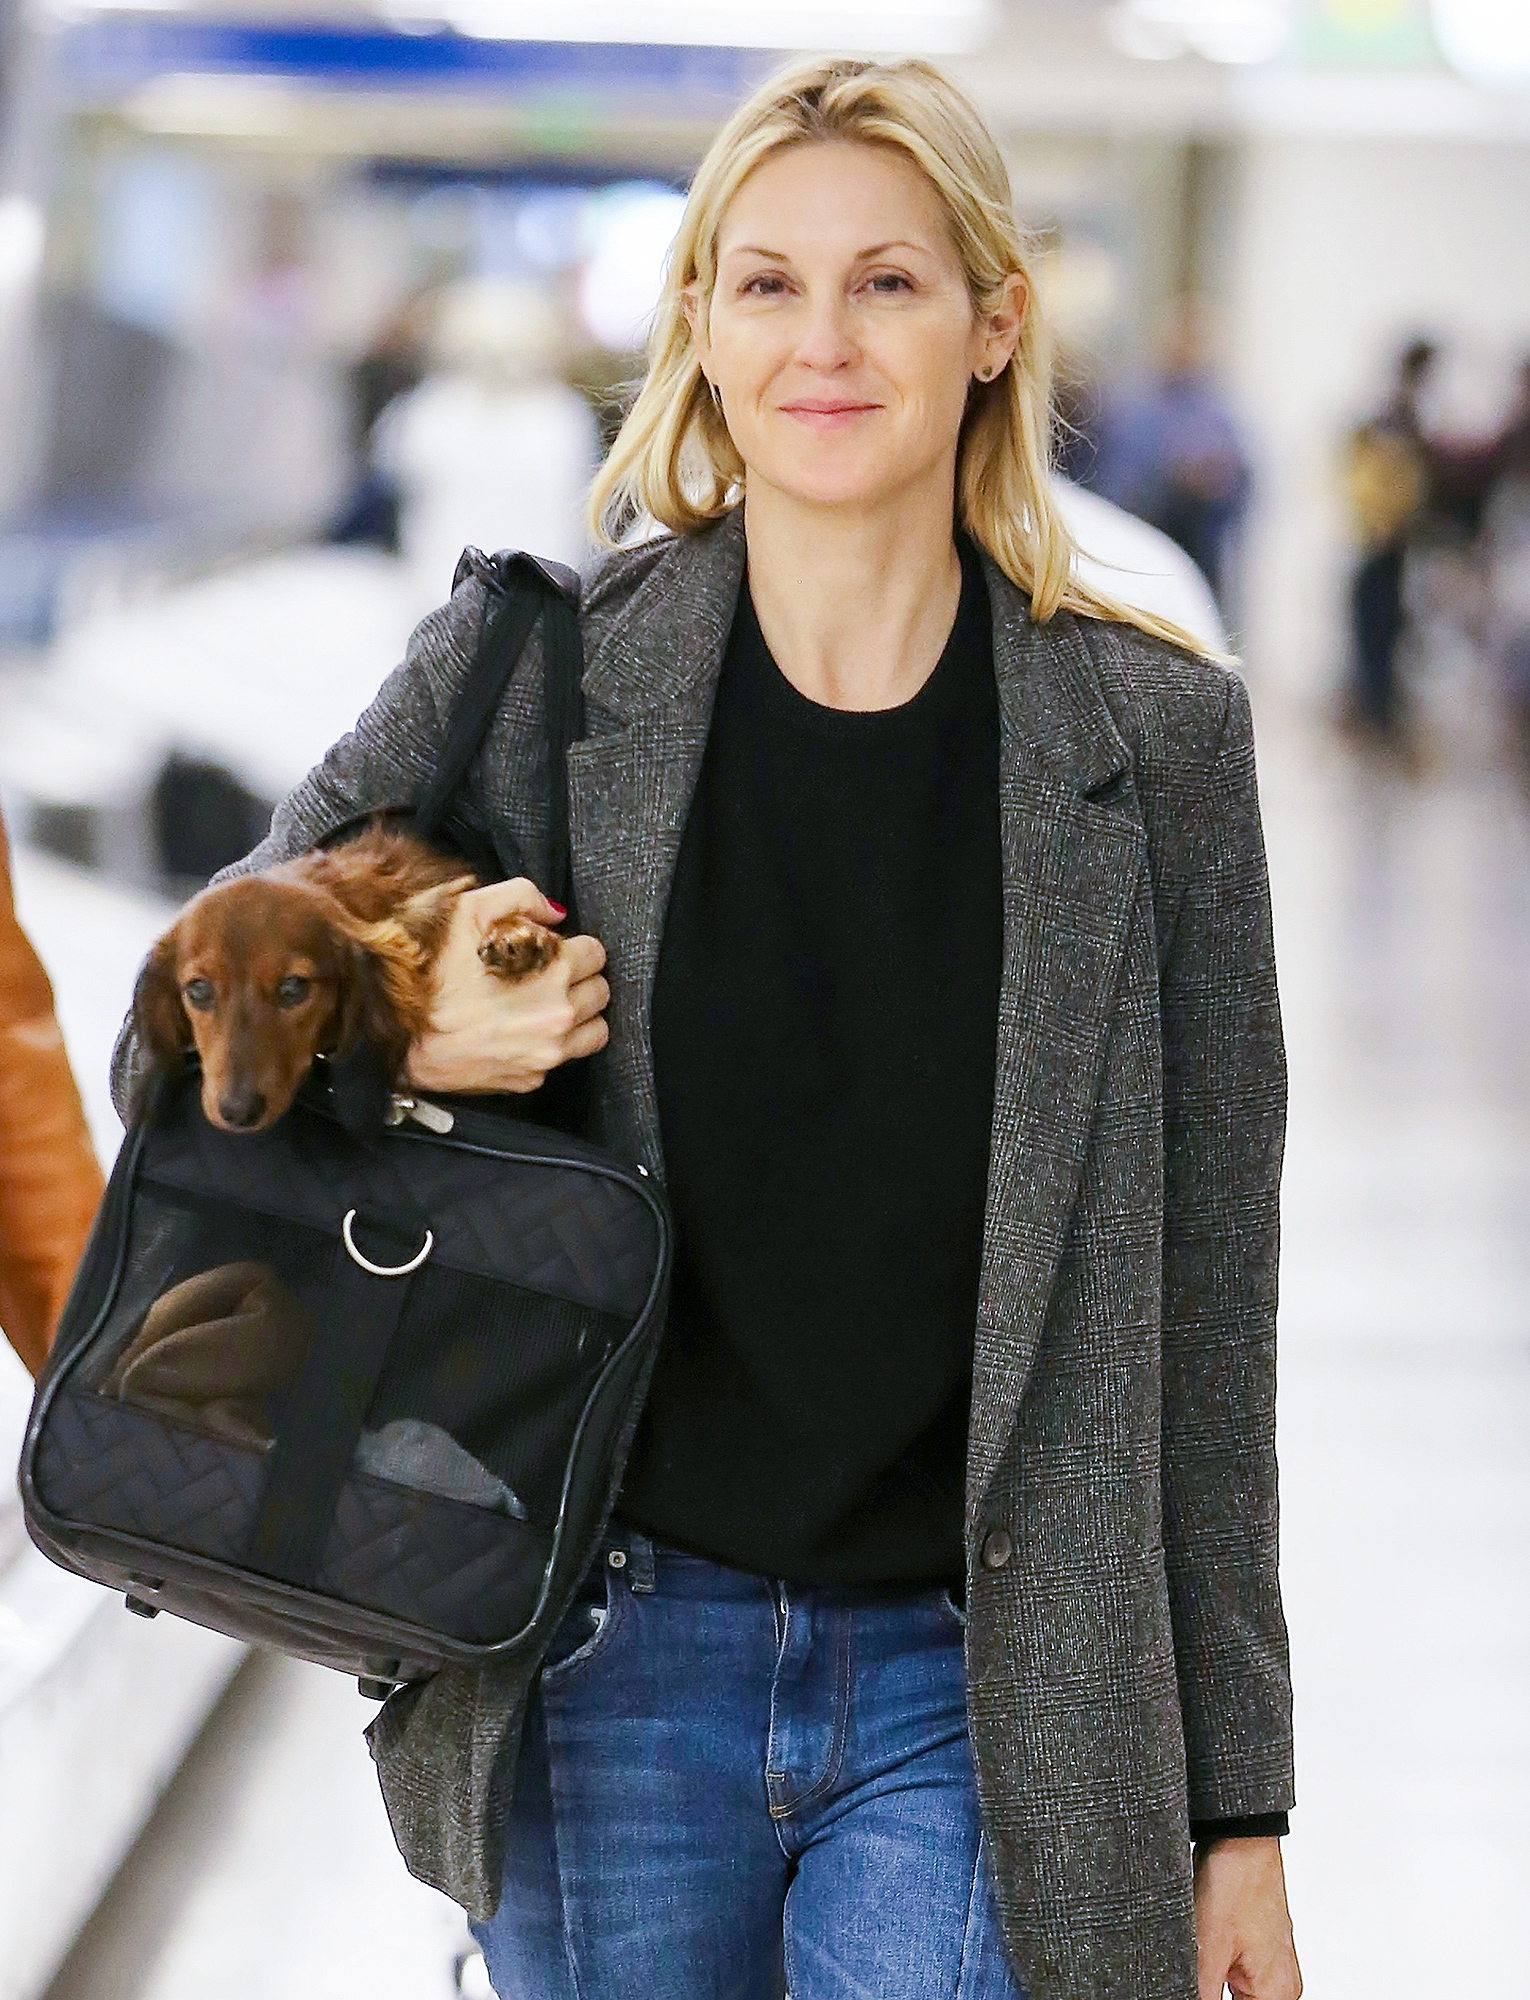 EXCLUSIVE: Makeup free Kelly Rutherford gives her dog a lift at LAX Airport in Los Angeles